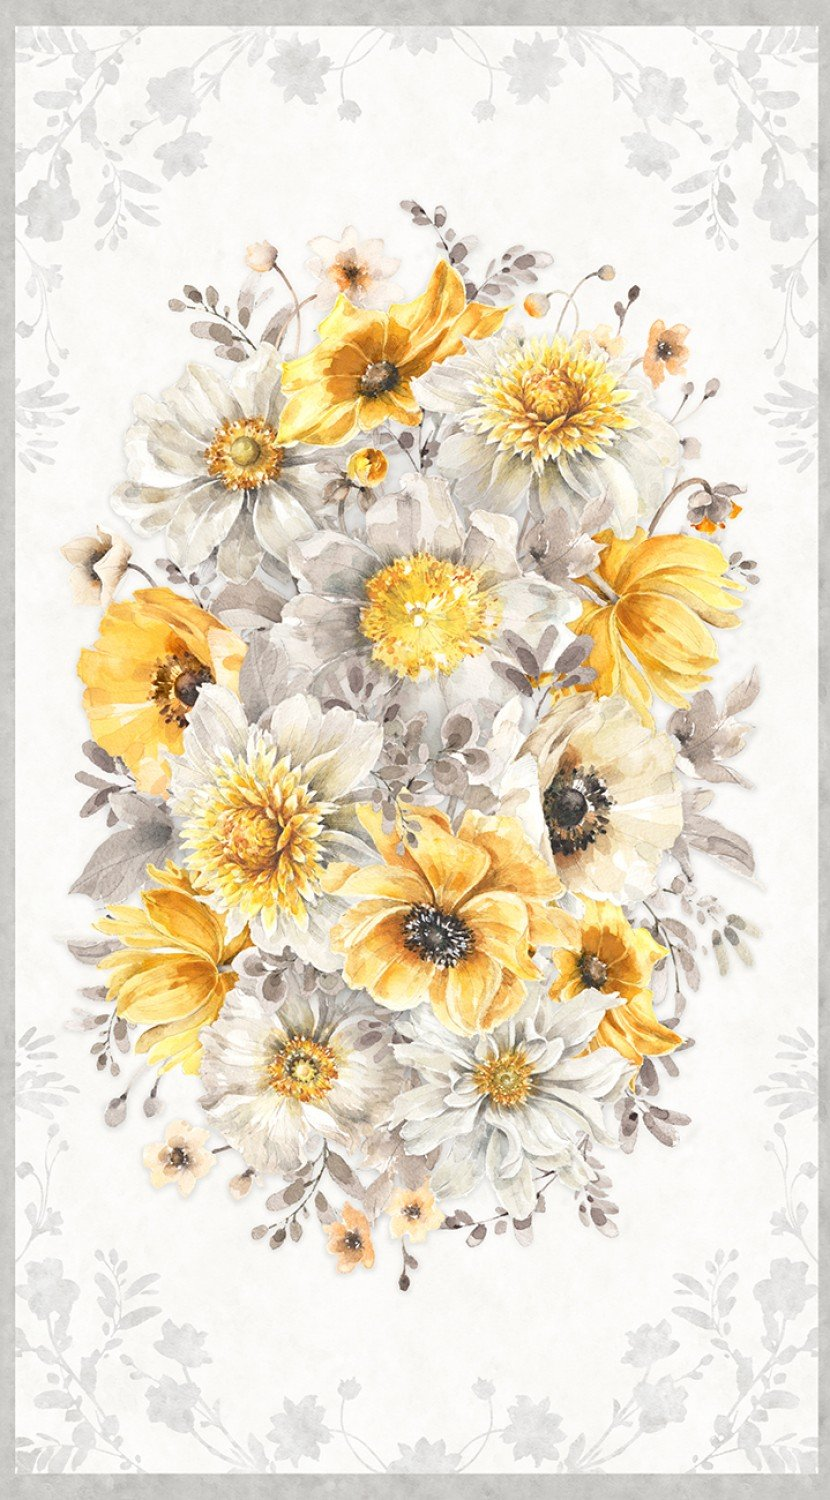 Wilmington - Fields of Gold - Large Floral Panel - N36